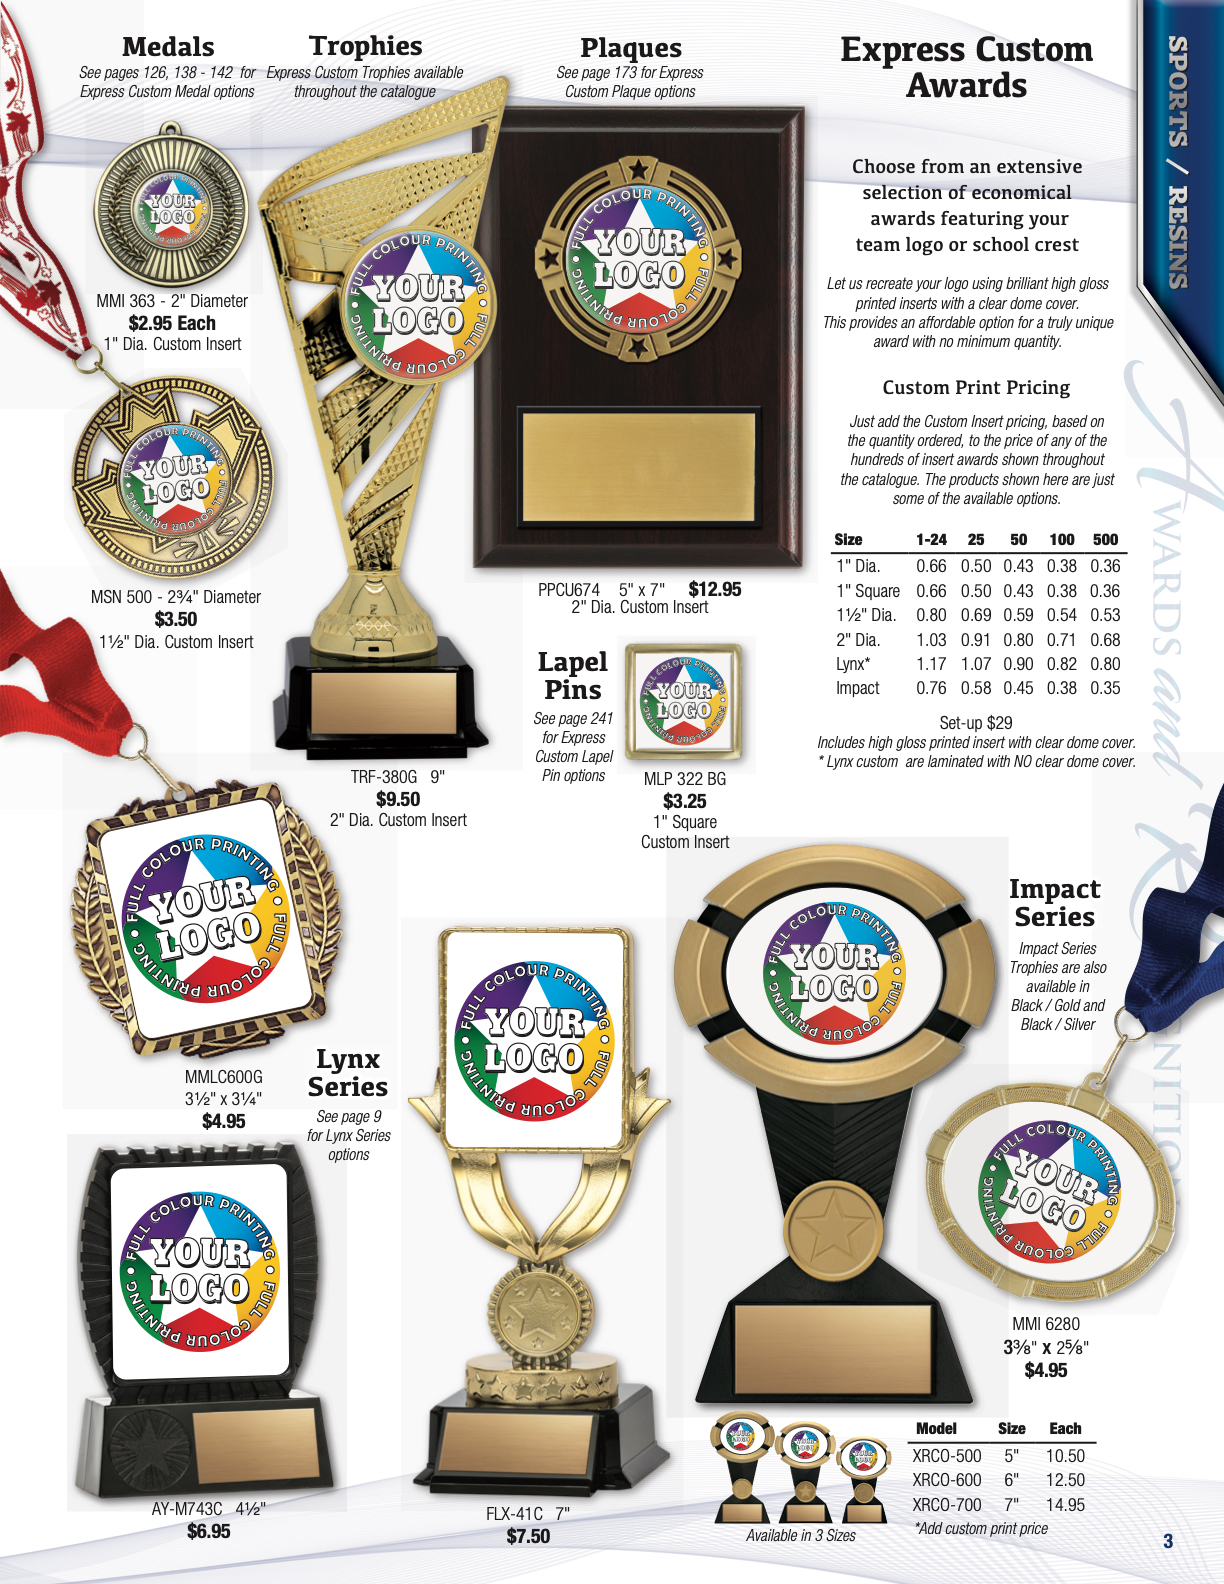 Winning Trophies - Anual Catalogue for Awards & Recognition